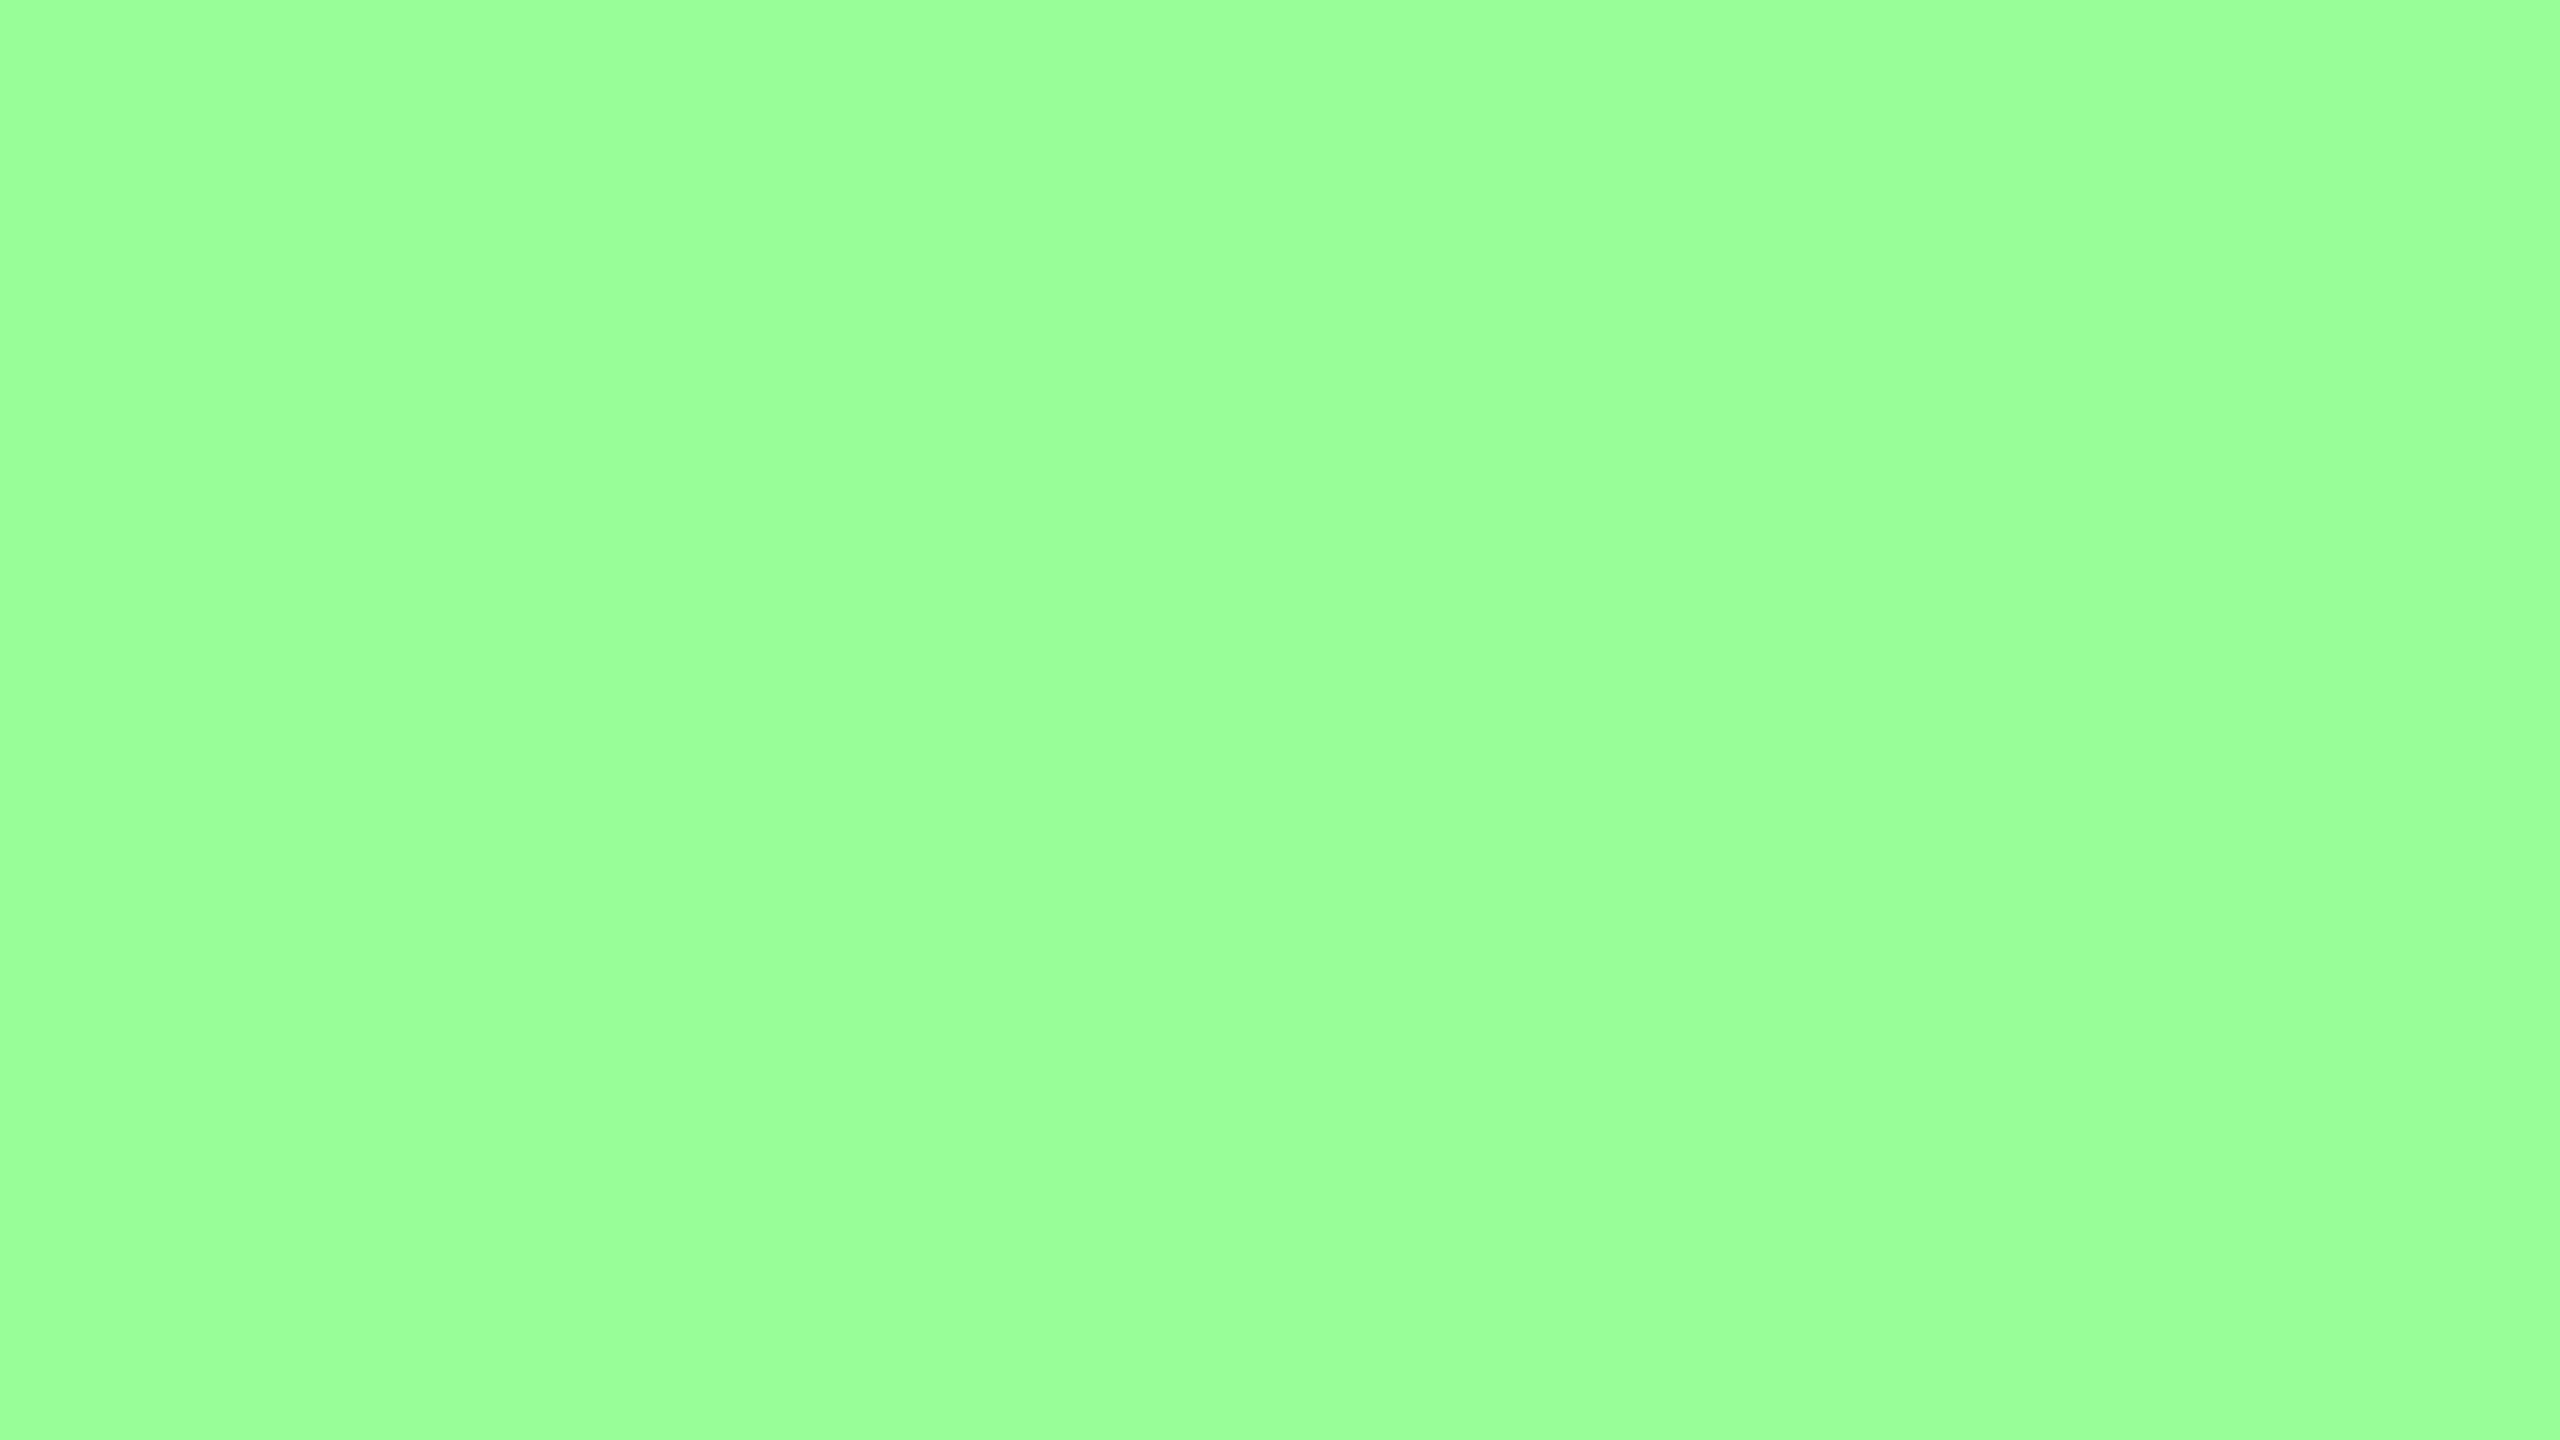 comimages2560x14402560x1440 mint green solid color backgroundjpg 2560x1440